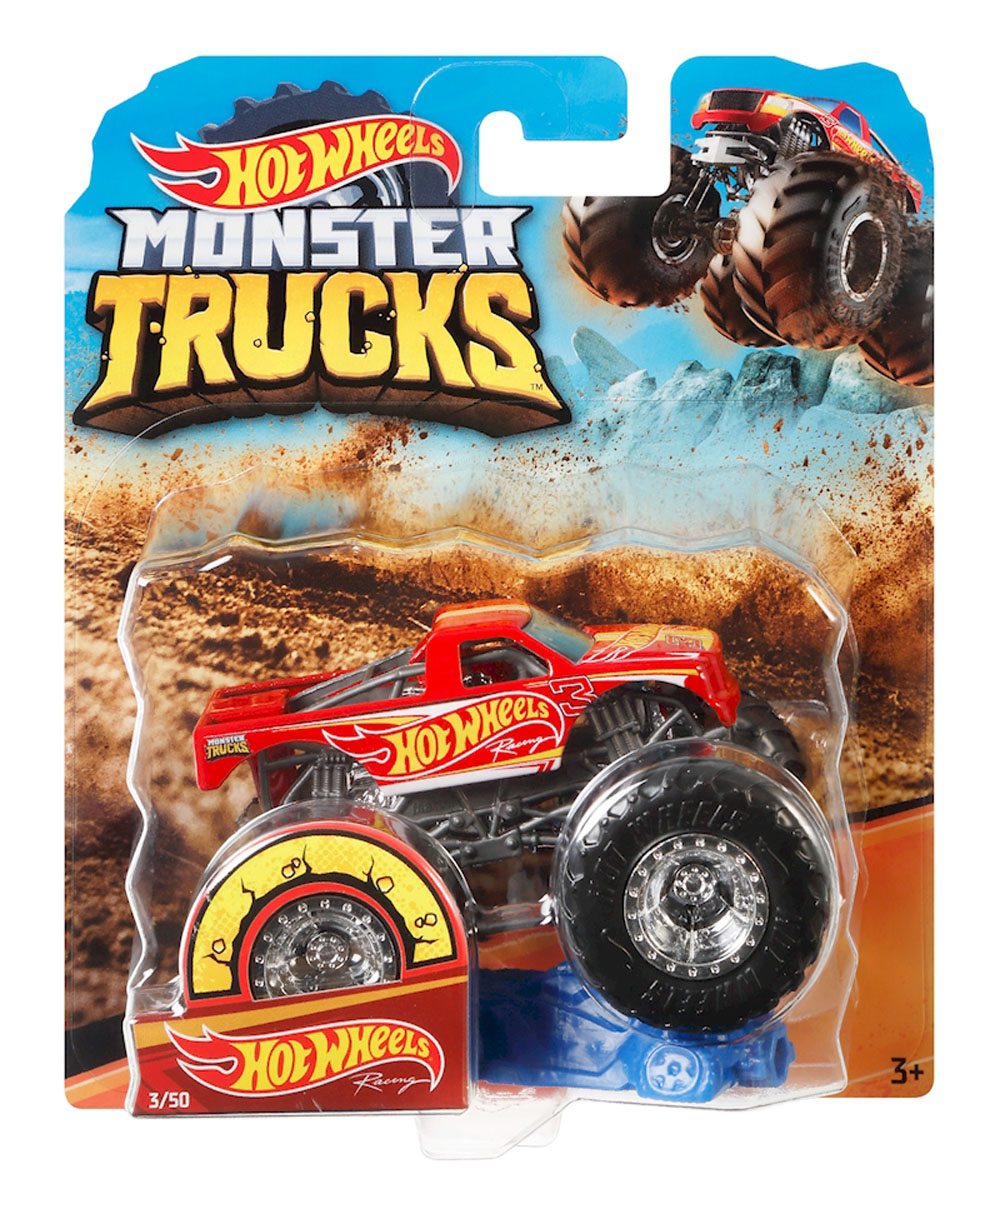 Hot Wheels Monster Trucks Racing Truck Connect And Crash Car Included 3 50 1 64 Red Truck With Giant Wheels Ele Toys Llc